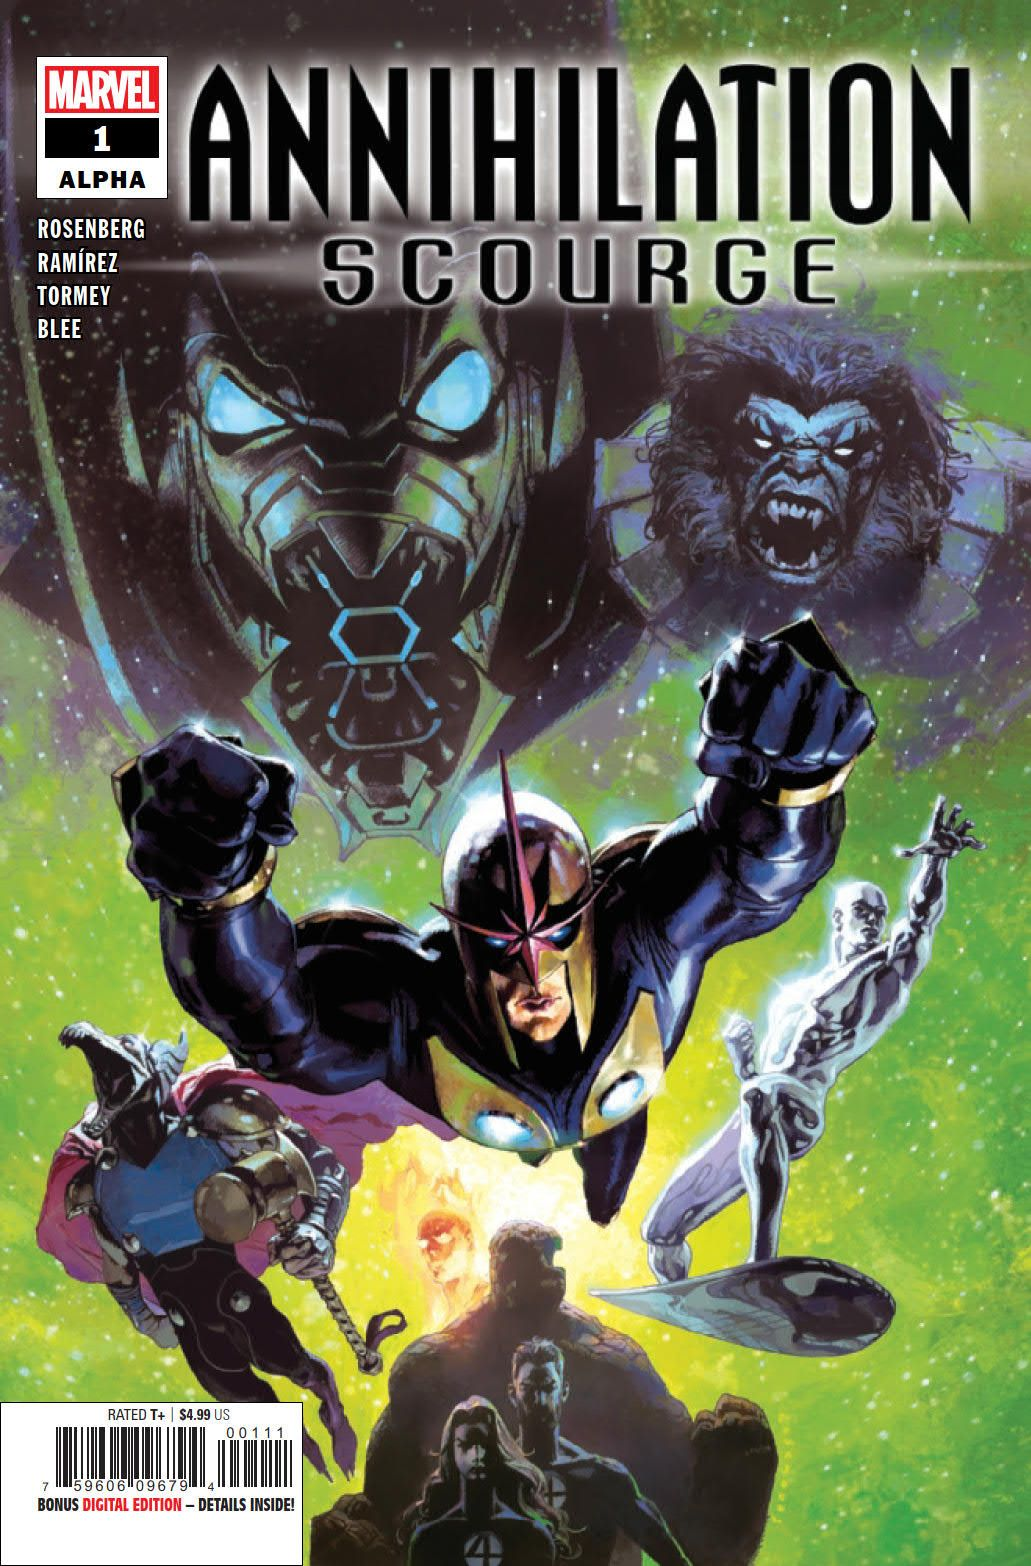 PREVIEW: Annihilation: Scourge Alpha #1 | CBR